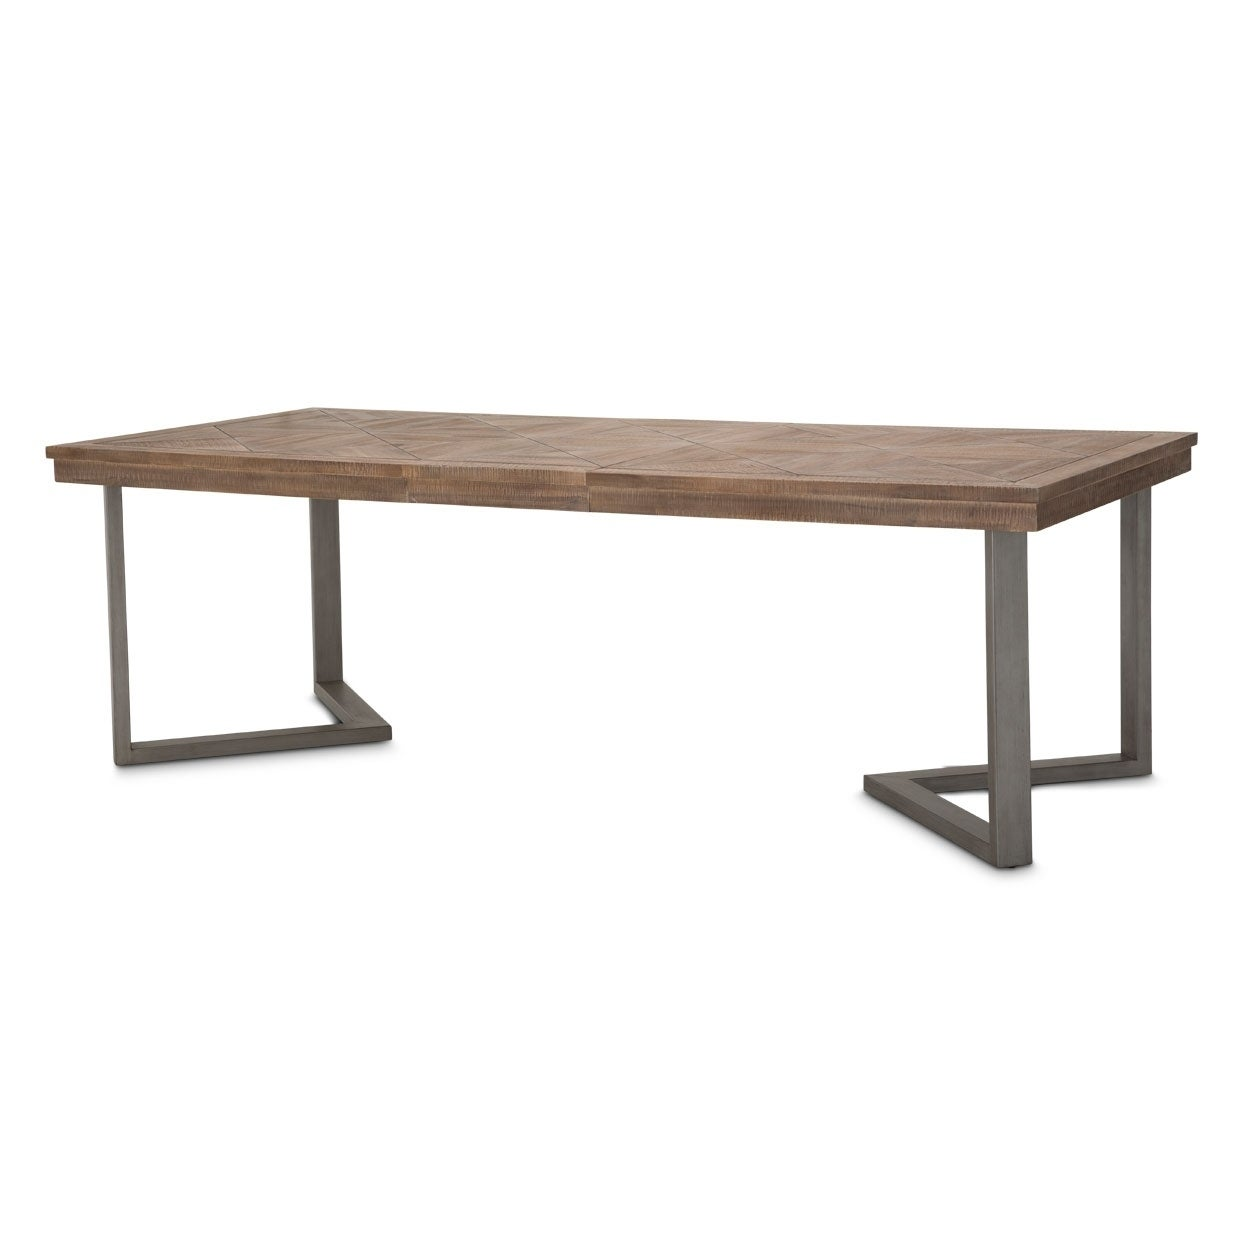 Shop Hudson Ferry 8 Foot Driftwood Rectangle Dining Table With Extension Brown Overstock 29044082